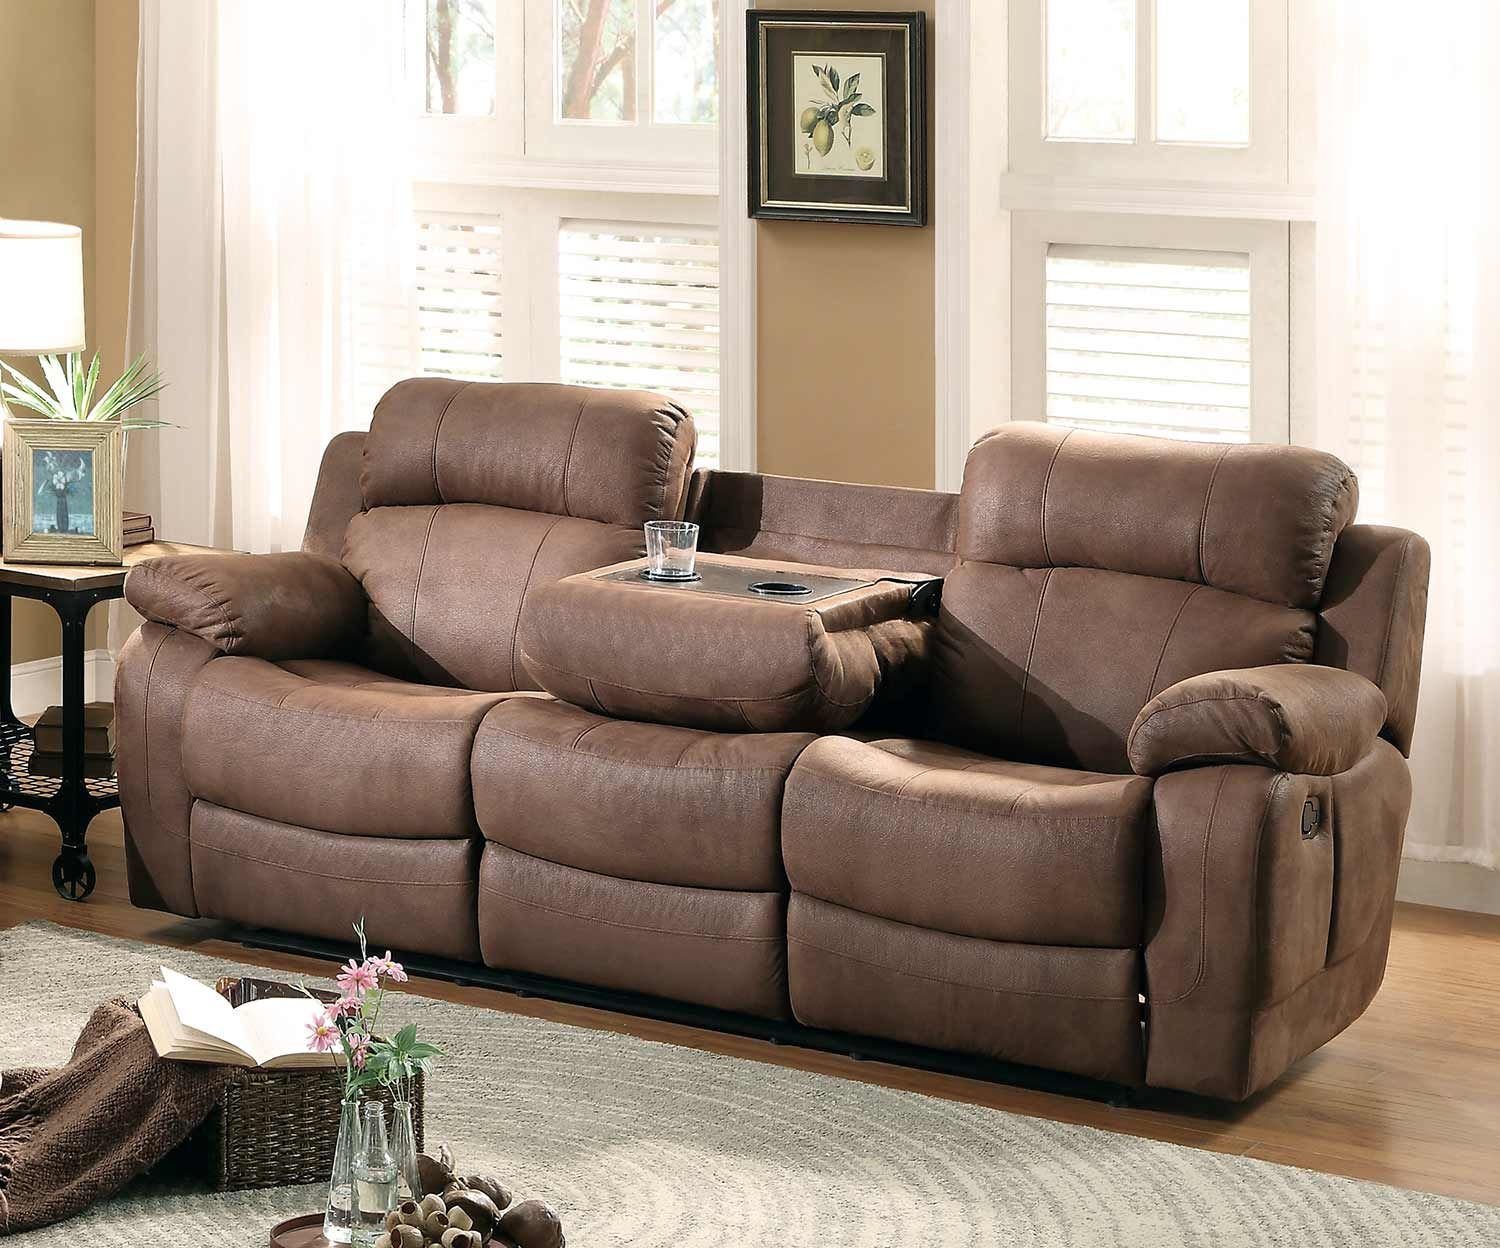 Marvelous Homelegance Marille Double Reclining Sofa With Center Drop Gmtry Best Dining Table And Chair Ideas Images Gmtryco